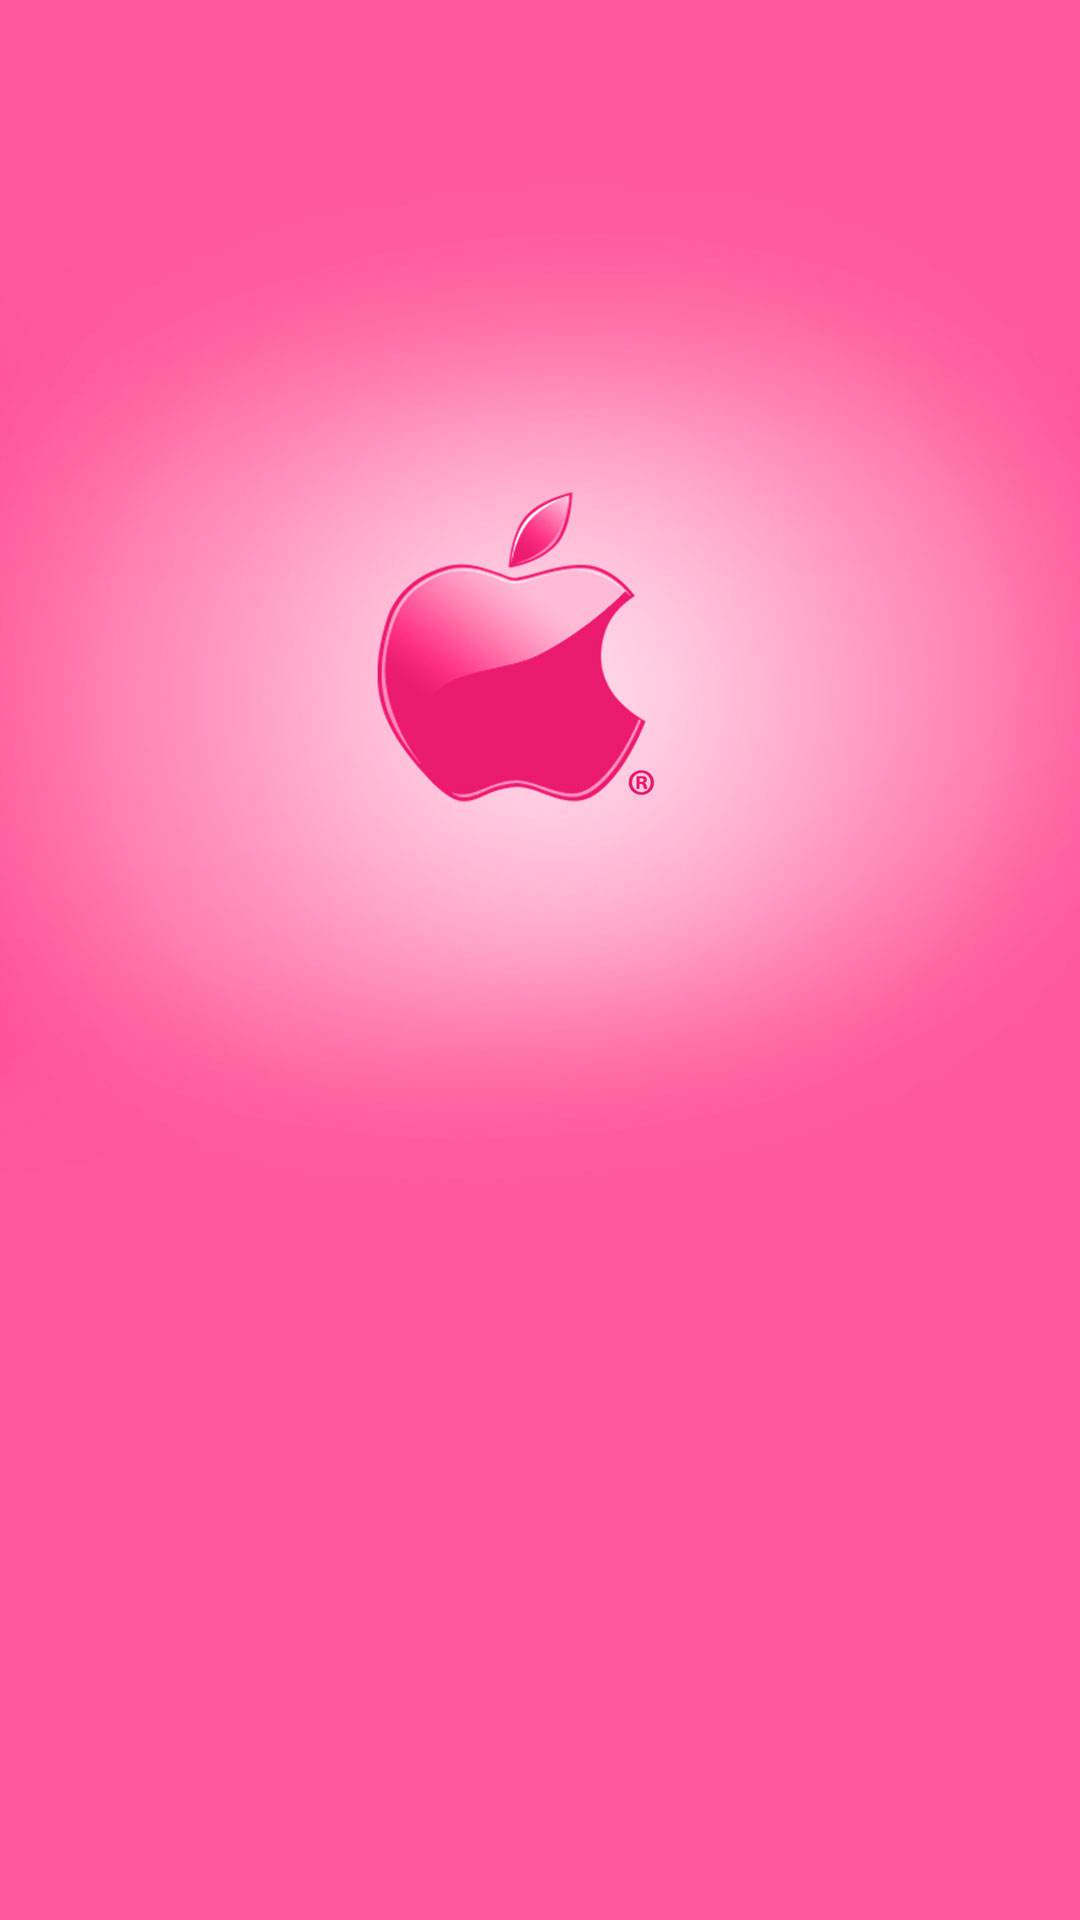 wallpaper weekends: in the pink - pink iphone wallpapers